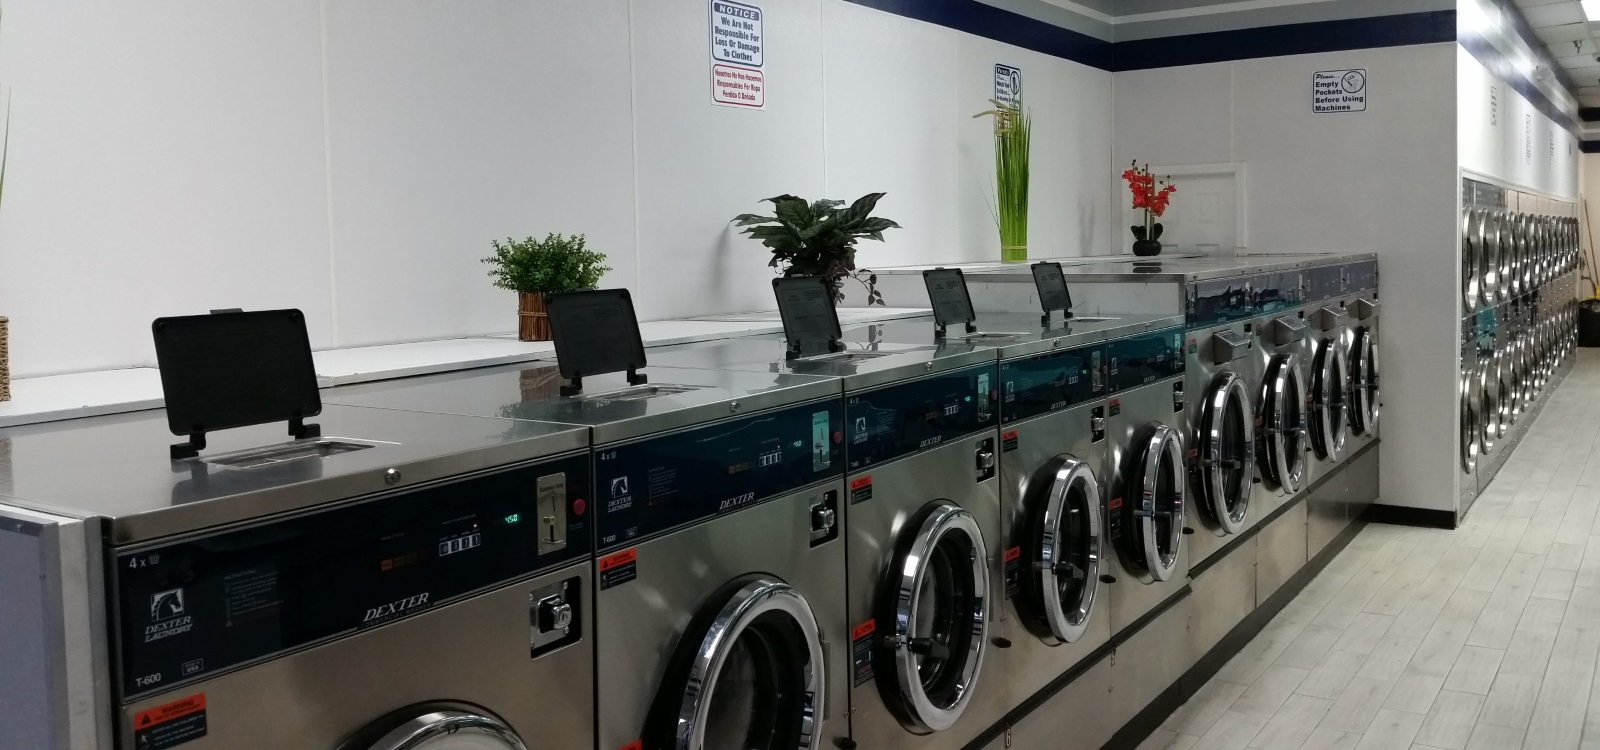 The Laundry Room - West Palm Beach Appointments